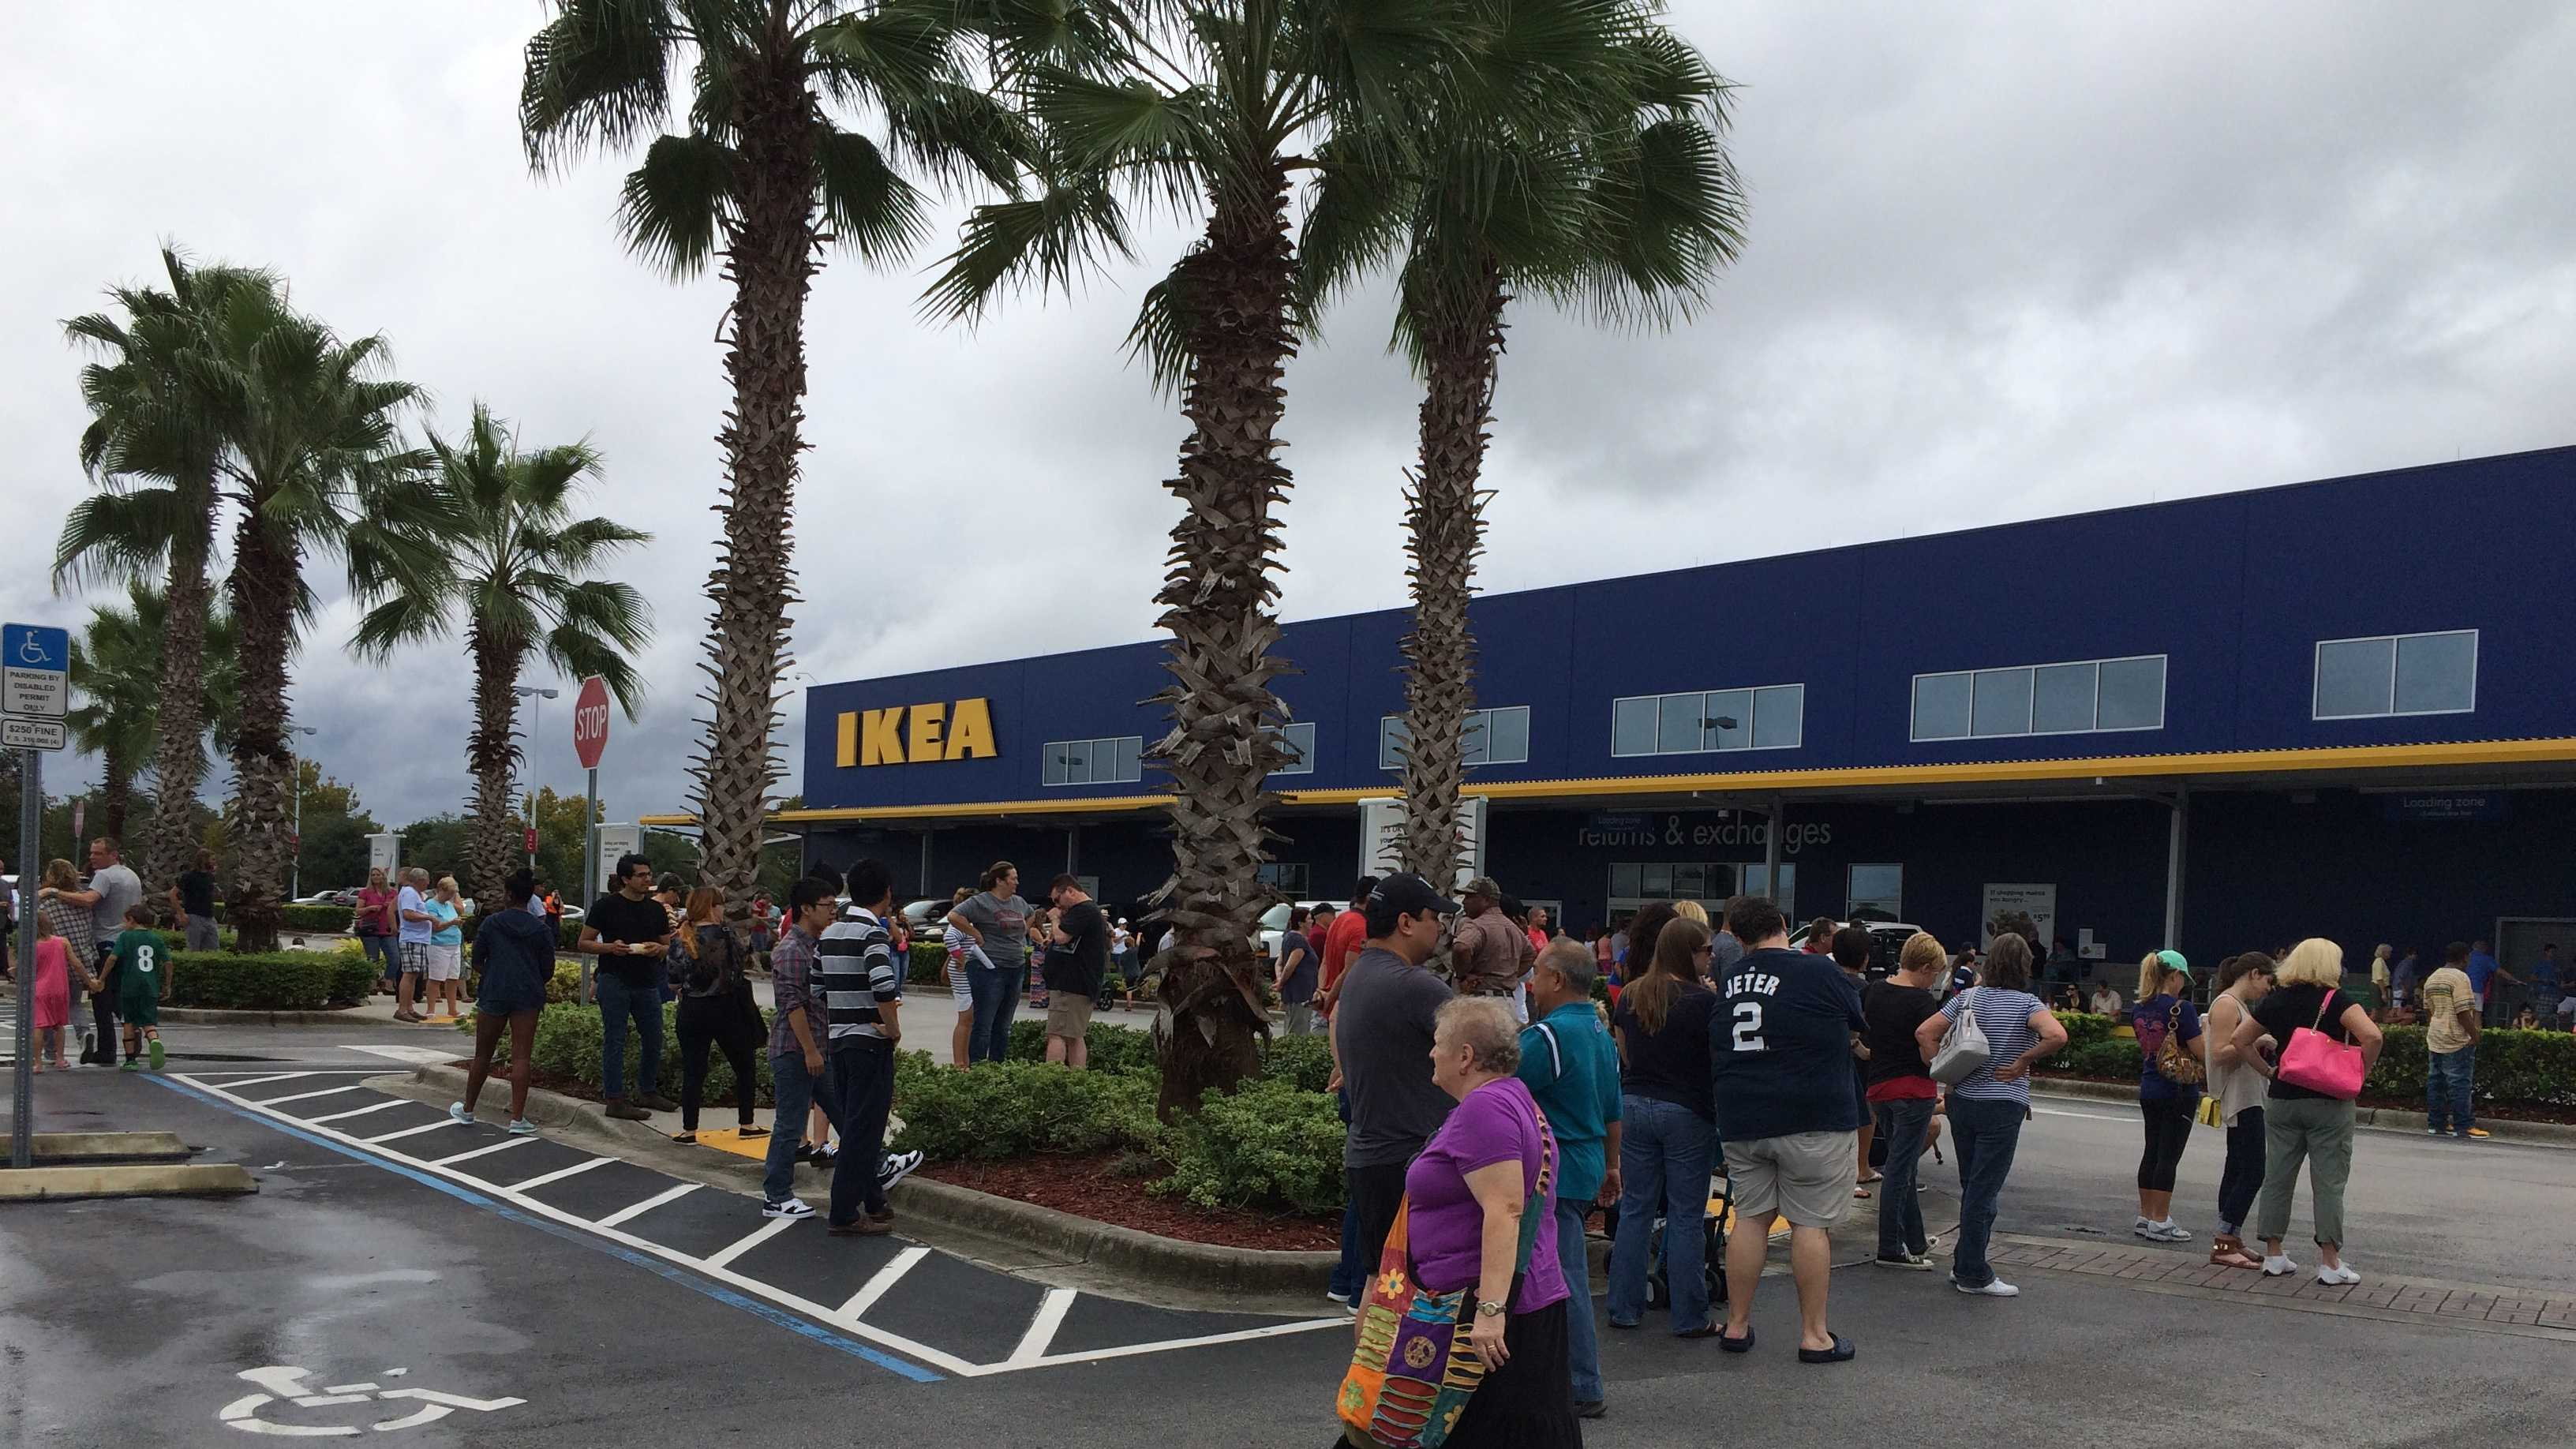 Shoppers evacuated from IKEA store when road rage suspects arrested